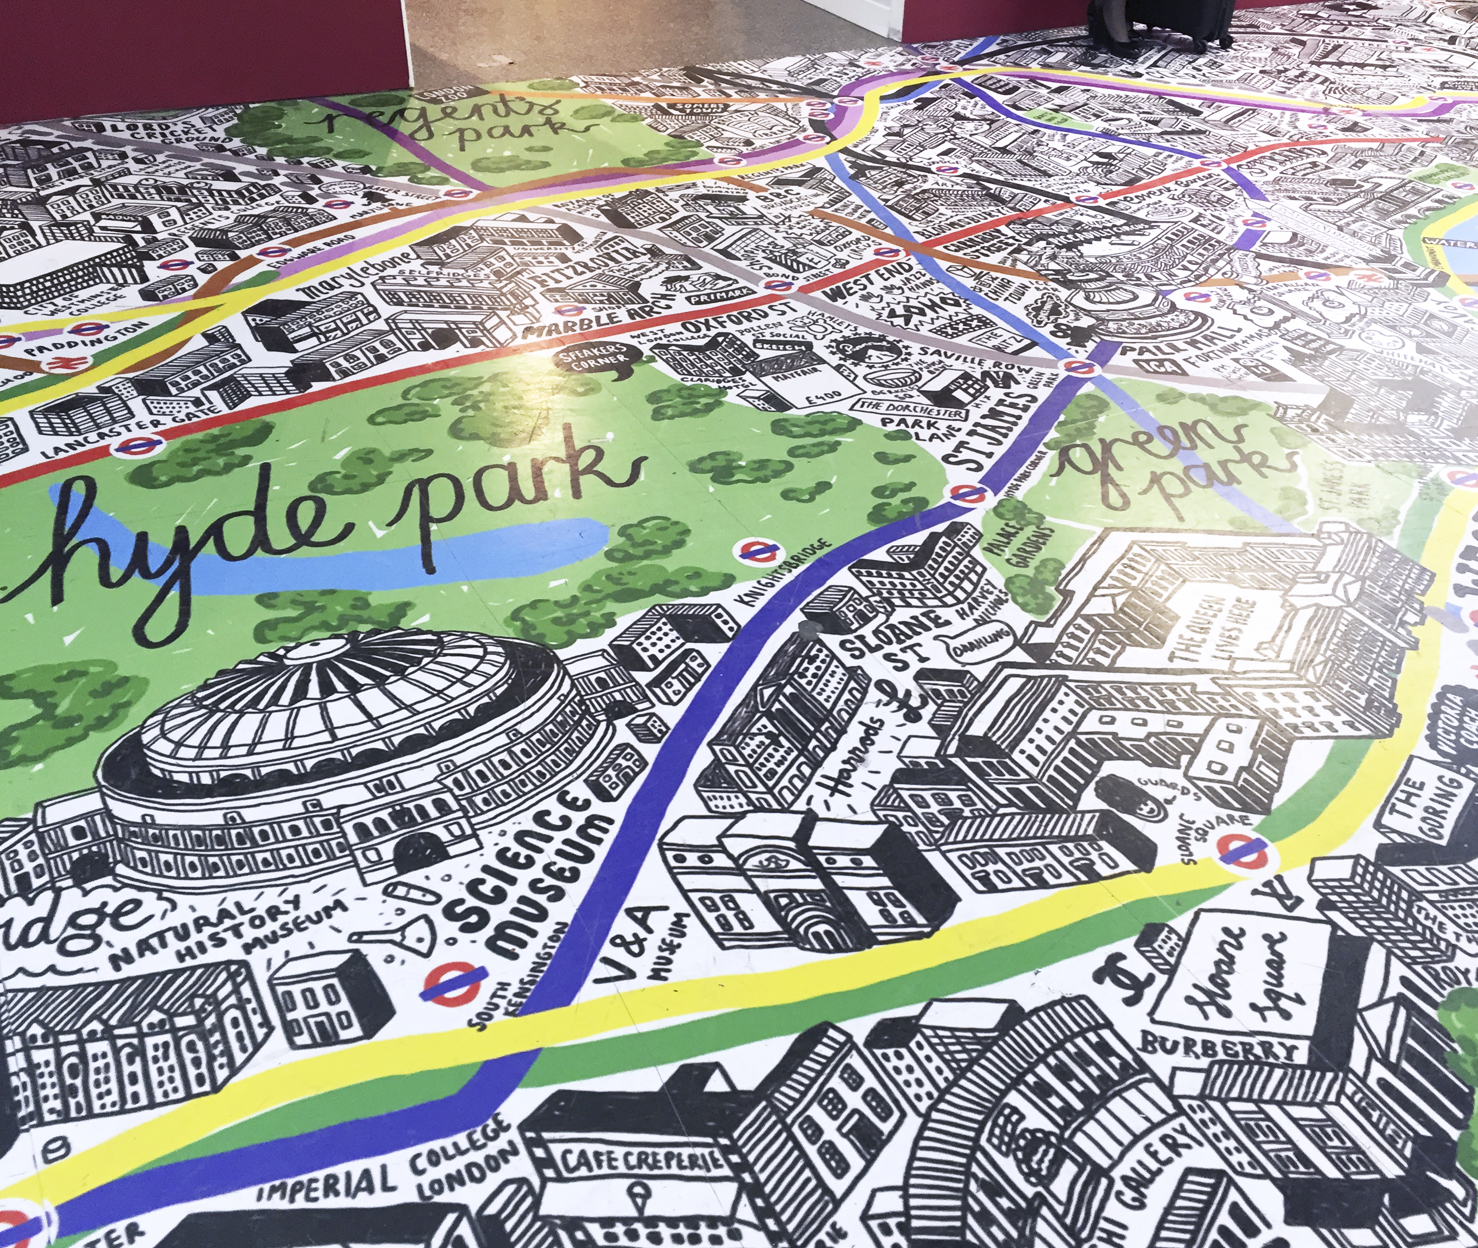 Hand Drawn Map Of London At Gatwick Airport Jenni Sparks